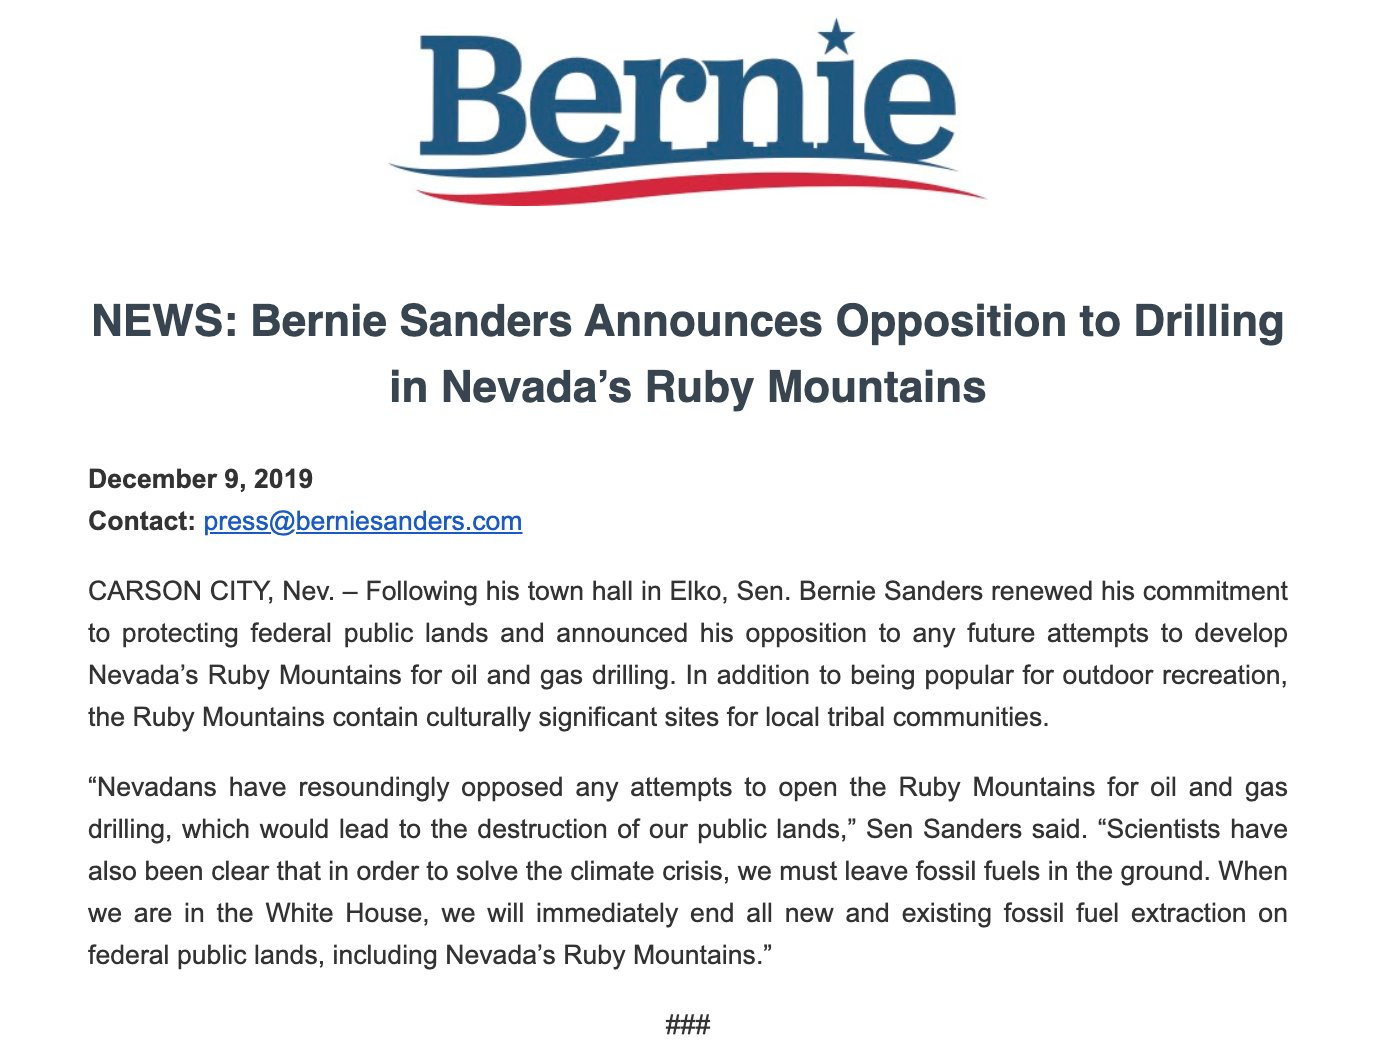 .@BernieSanders comes out against oil and gas leasing in the Ruby Mountains after an event in Elko yesterday. There have  been multiple requests to open up areas of the range to oil exploration, despite difficult geology. https://t.co/SHKxCPAF1r